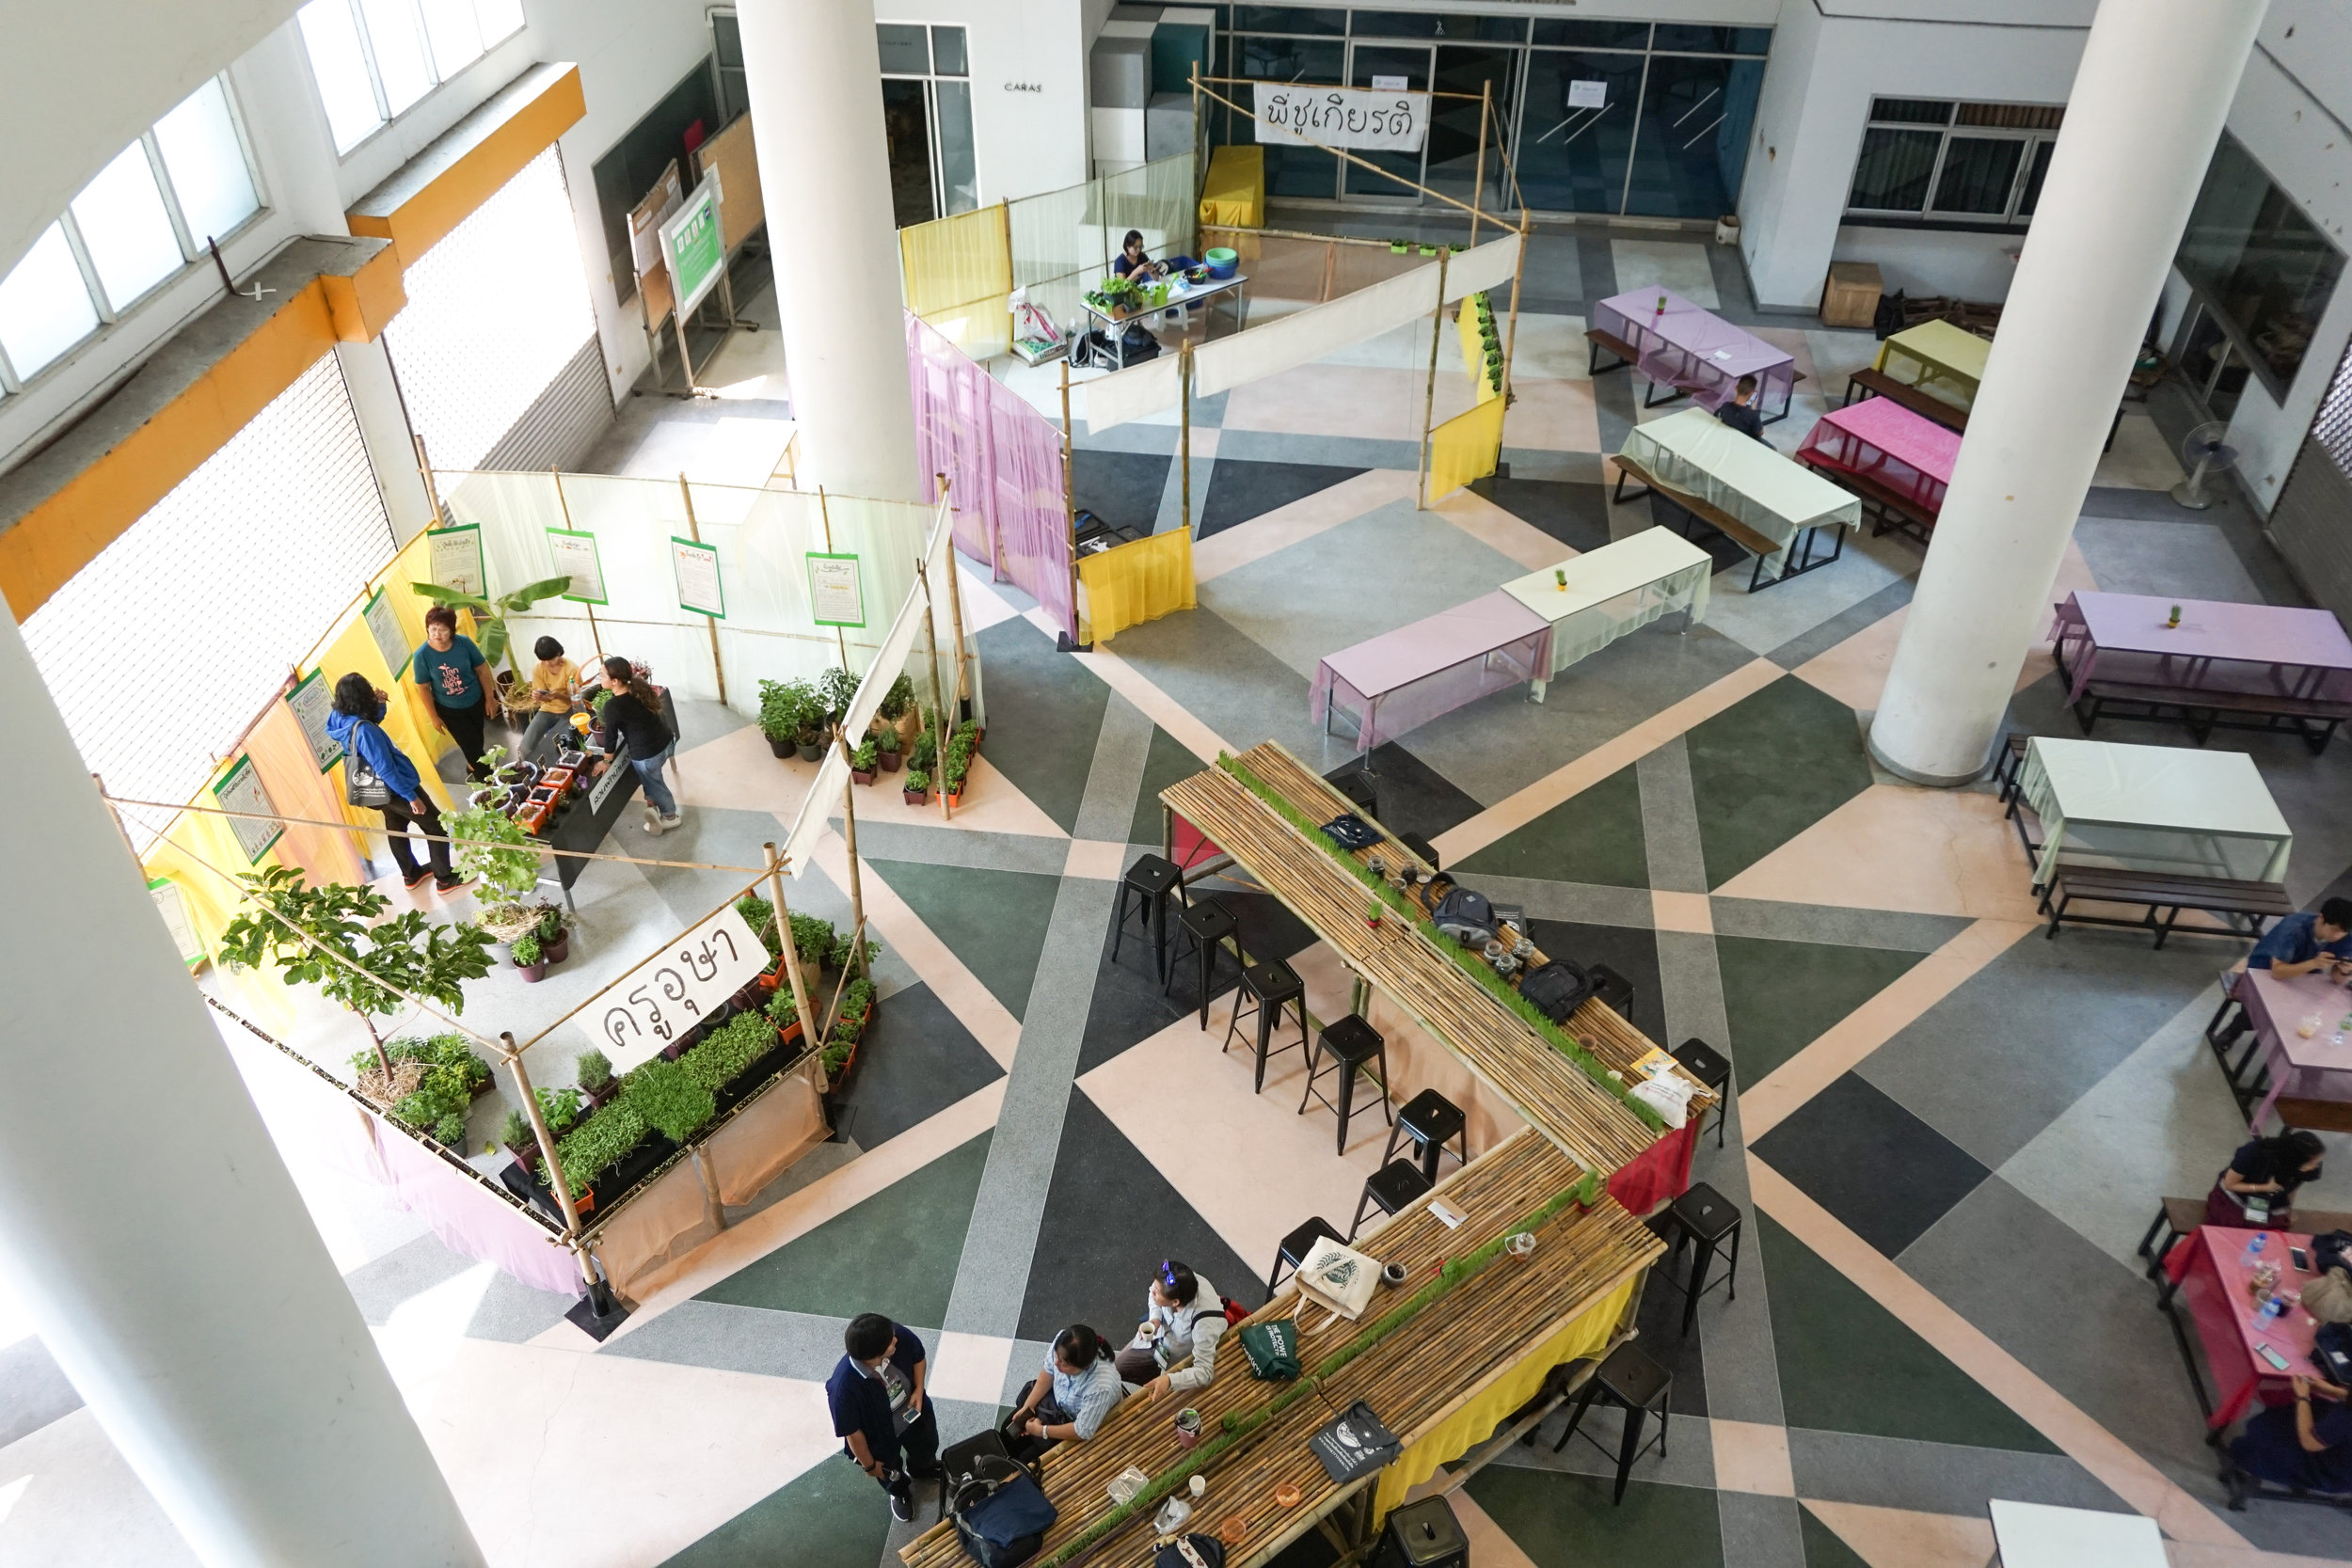 City Farming for a Sustainable City Event: The exhibition space